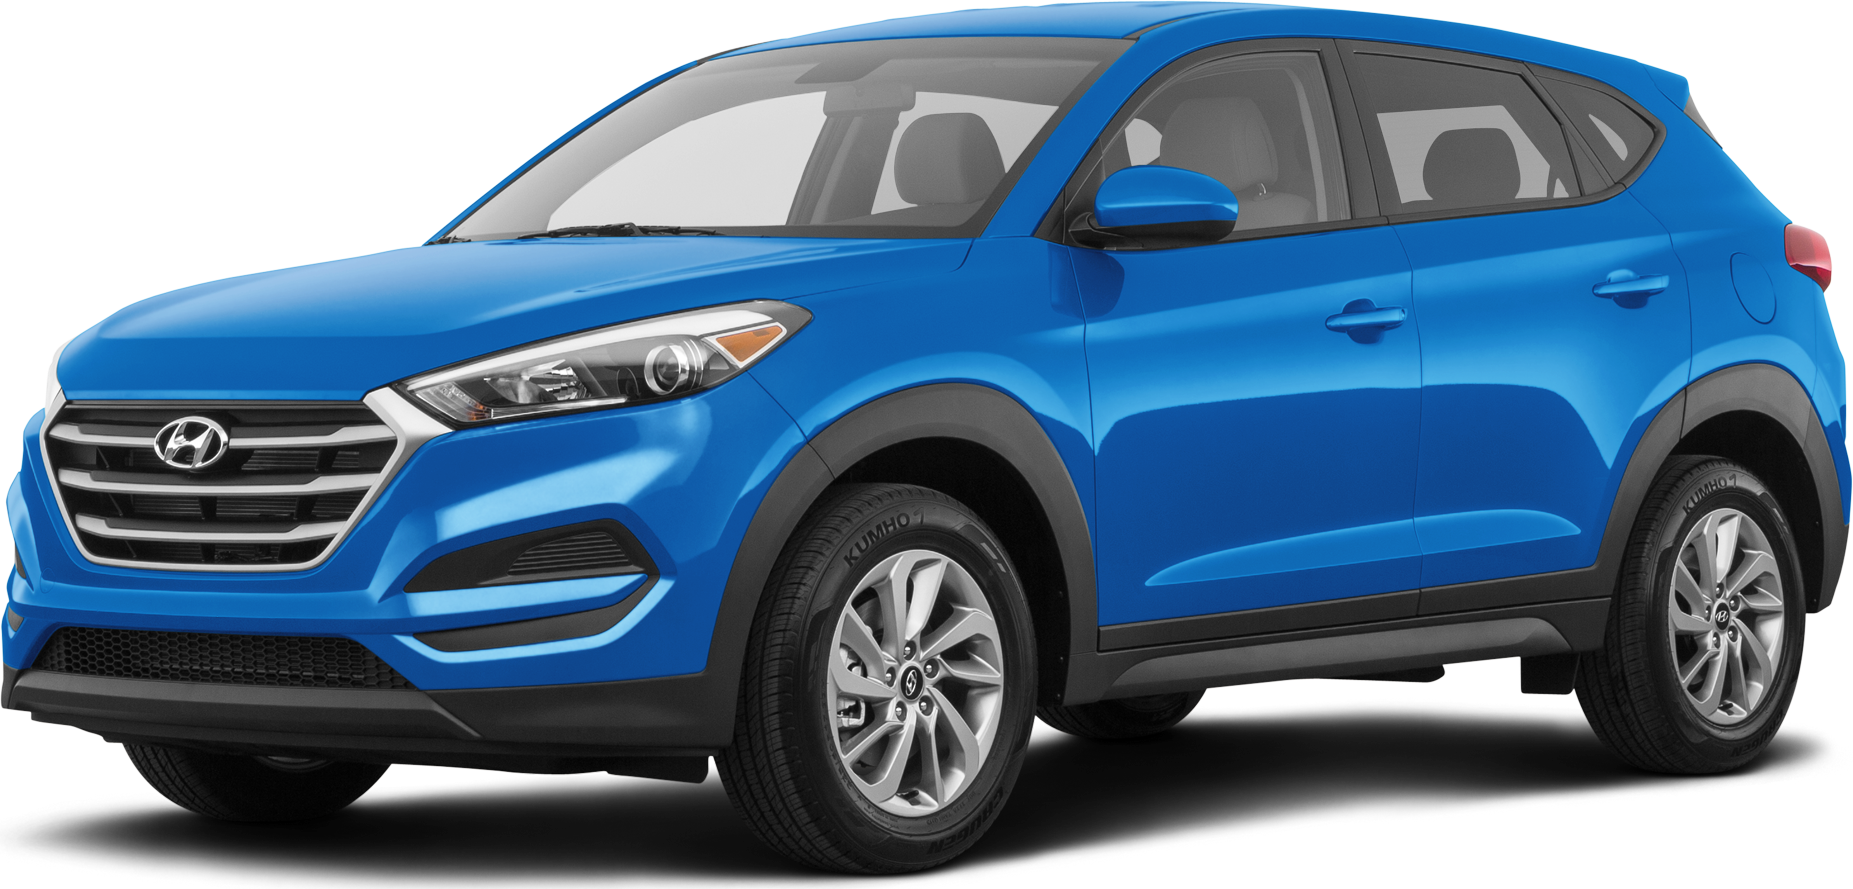 2018 Hyundai Tucson Values Cars For Sale Kelley Blue Book